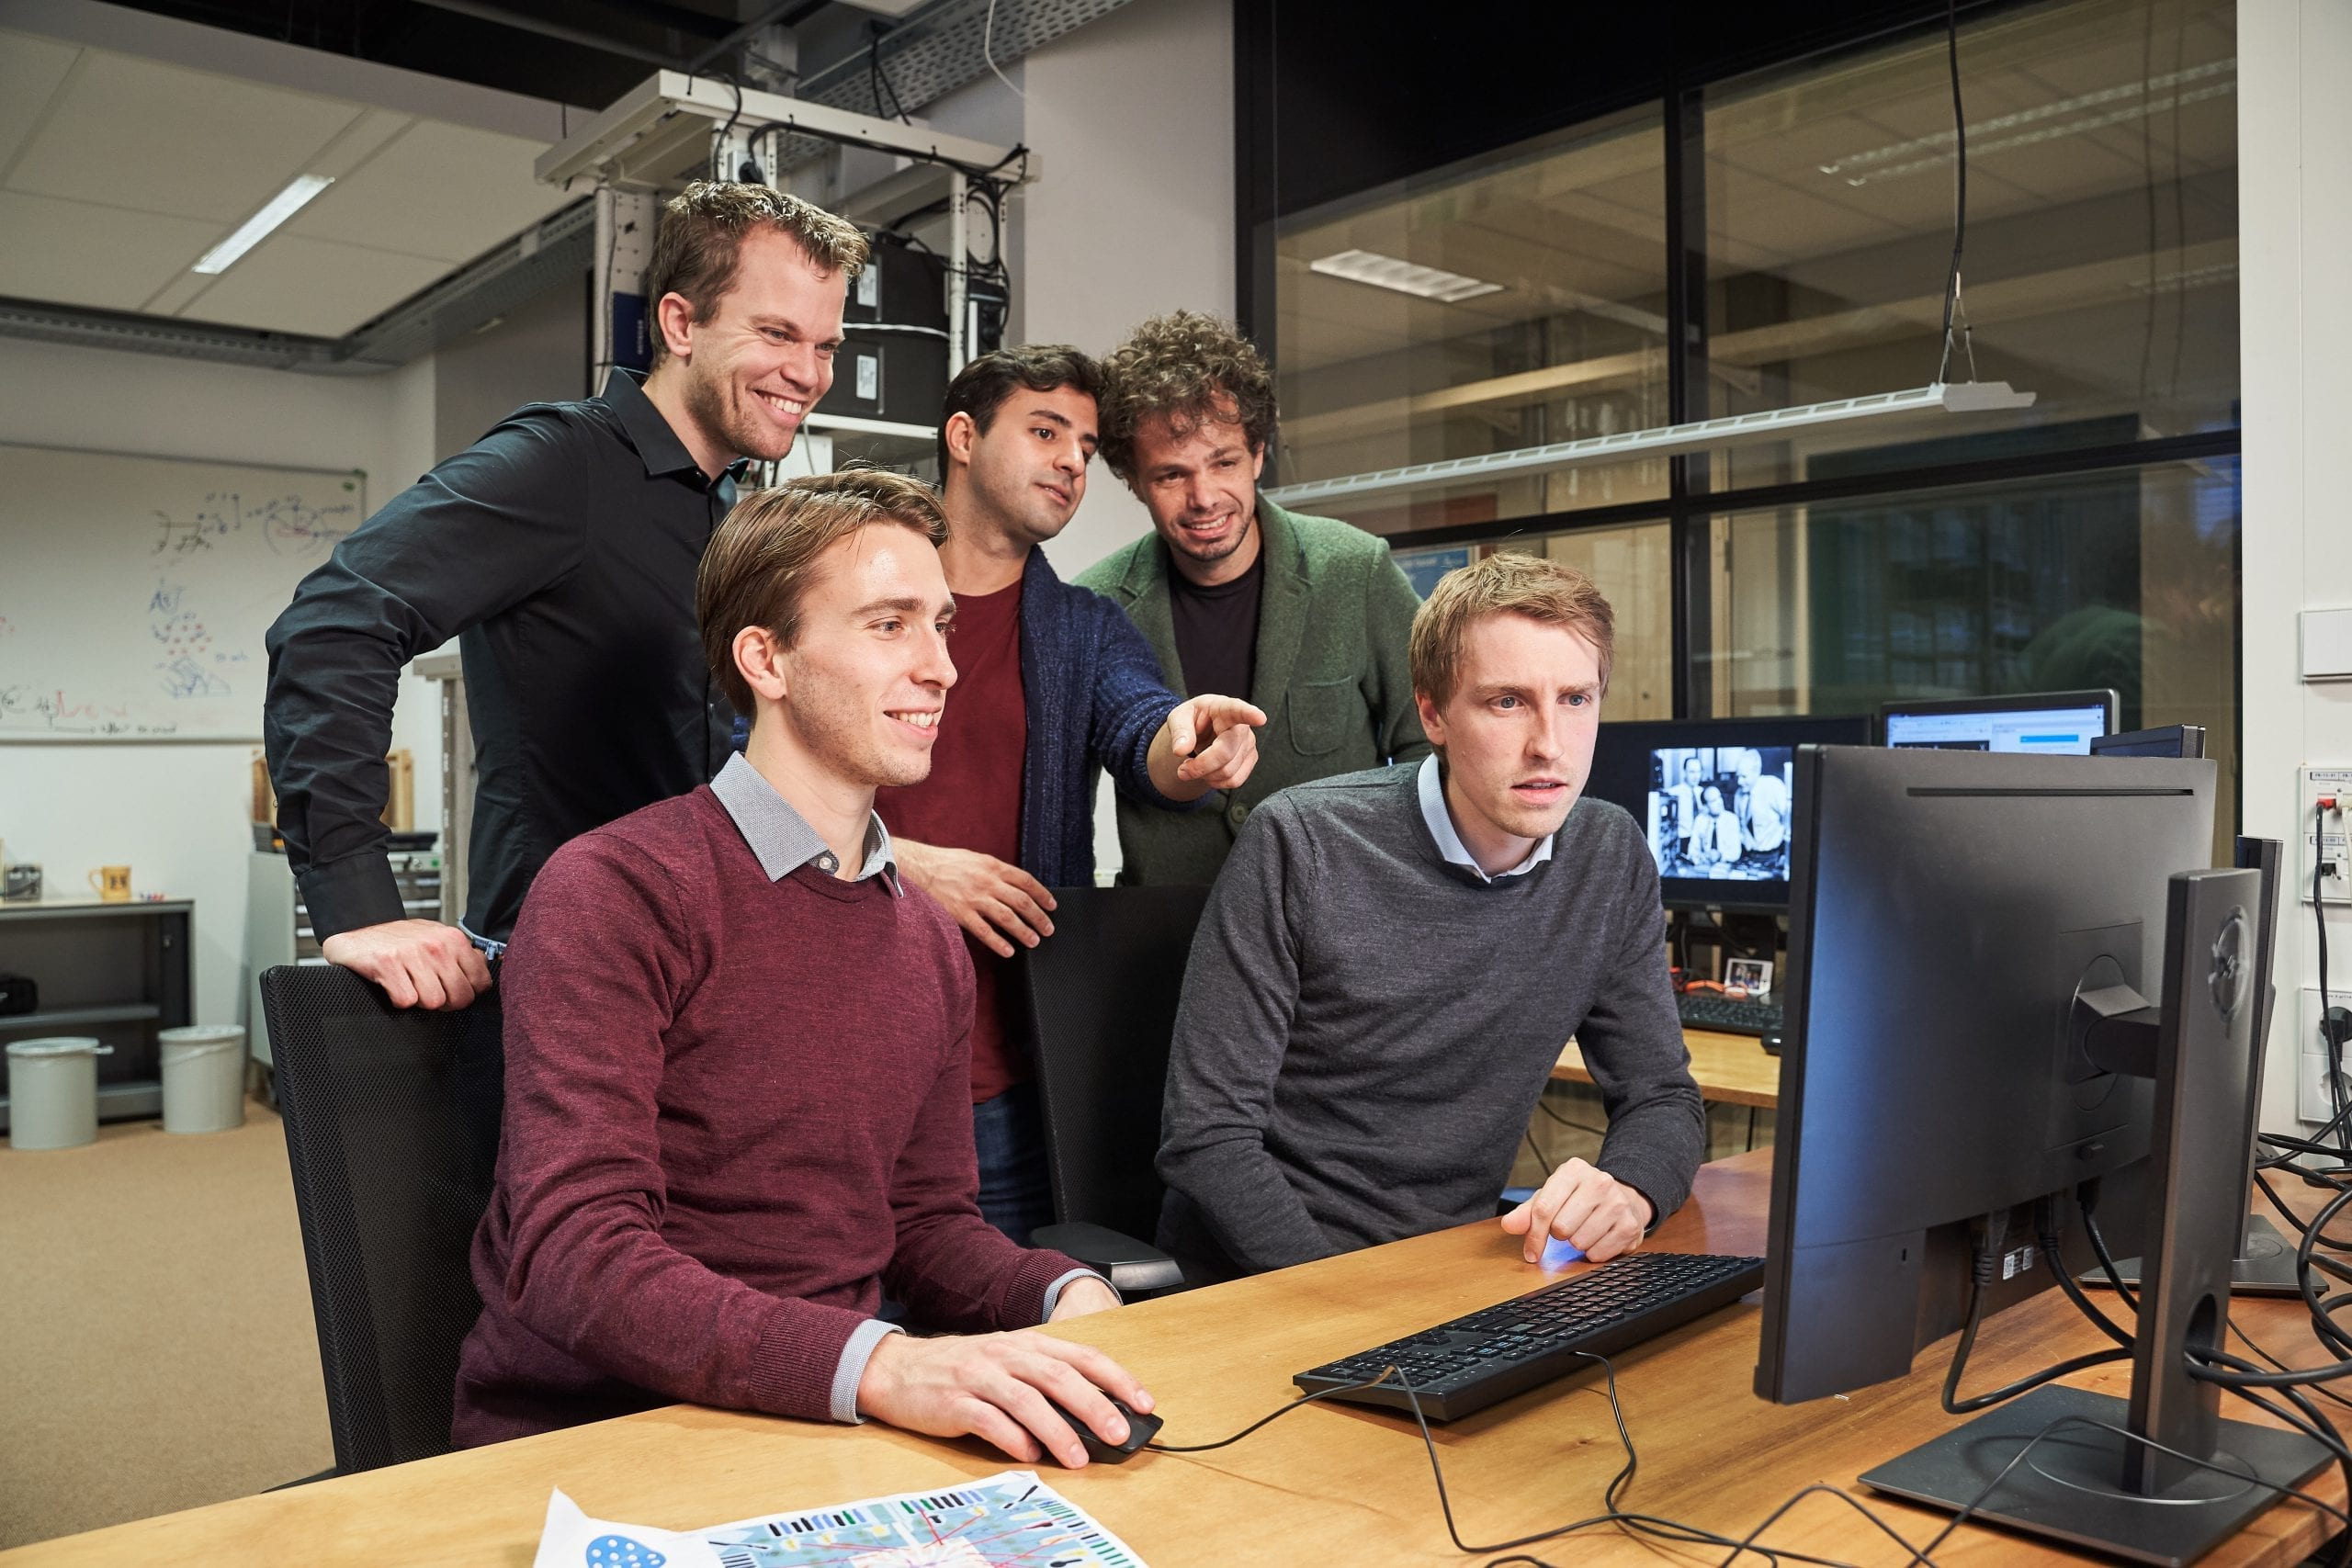 The team in the lab: (from top to bottom, from left to right): Menno Veldhorst, Amir Sammak, Giordano Scappucci, Nico Hendrickx and David Franke.